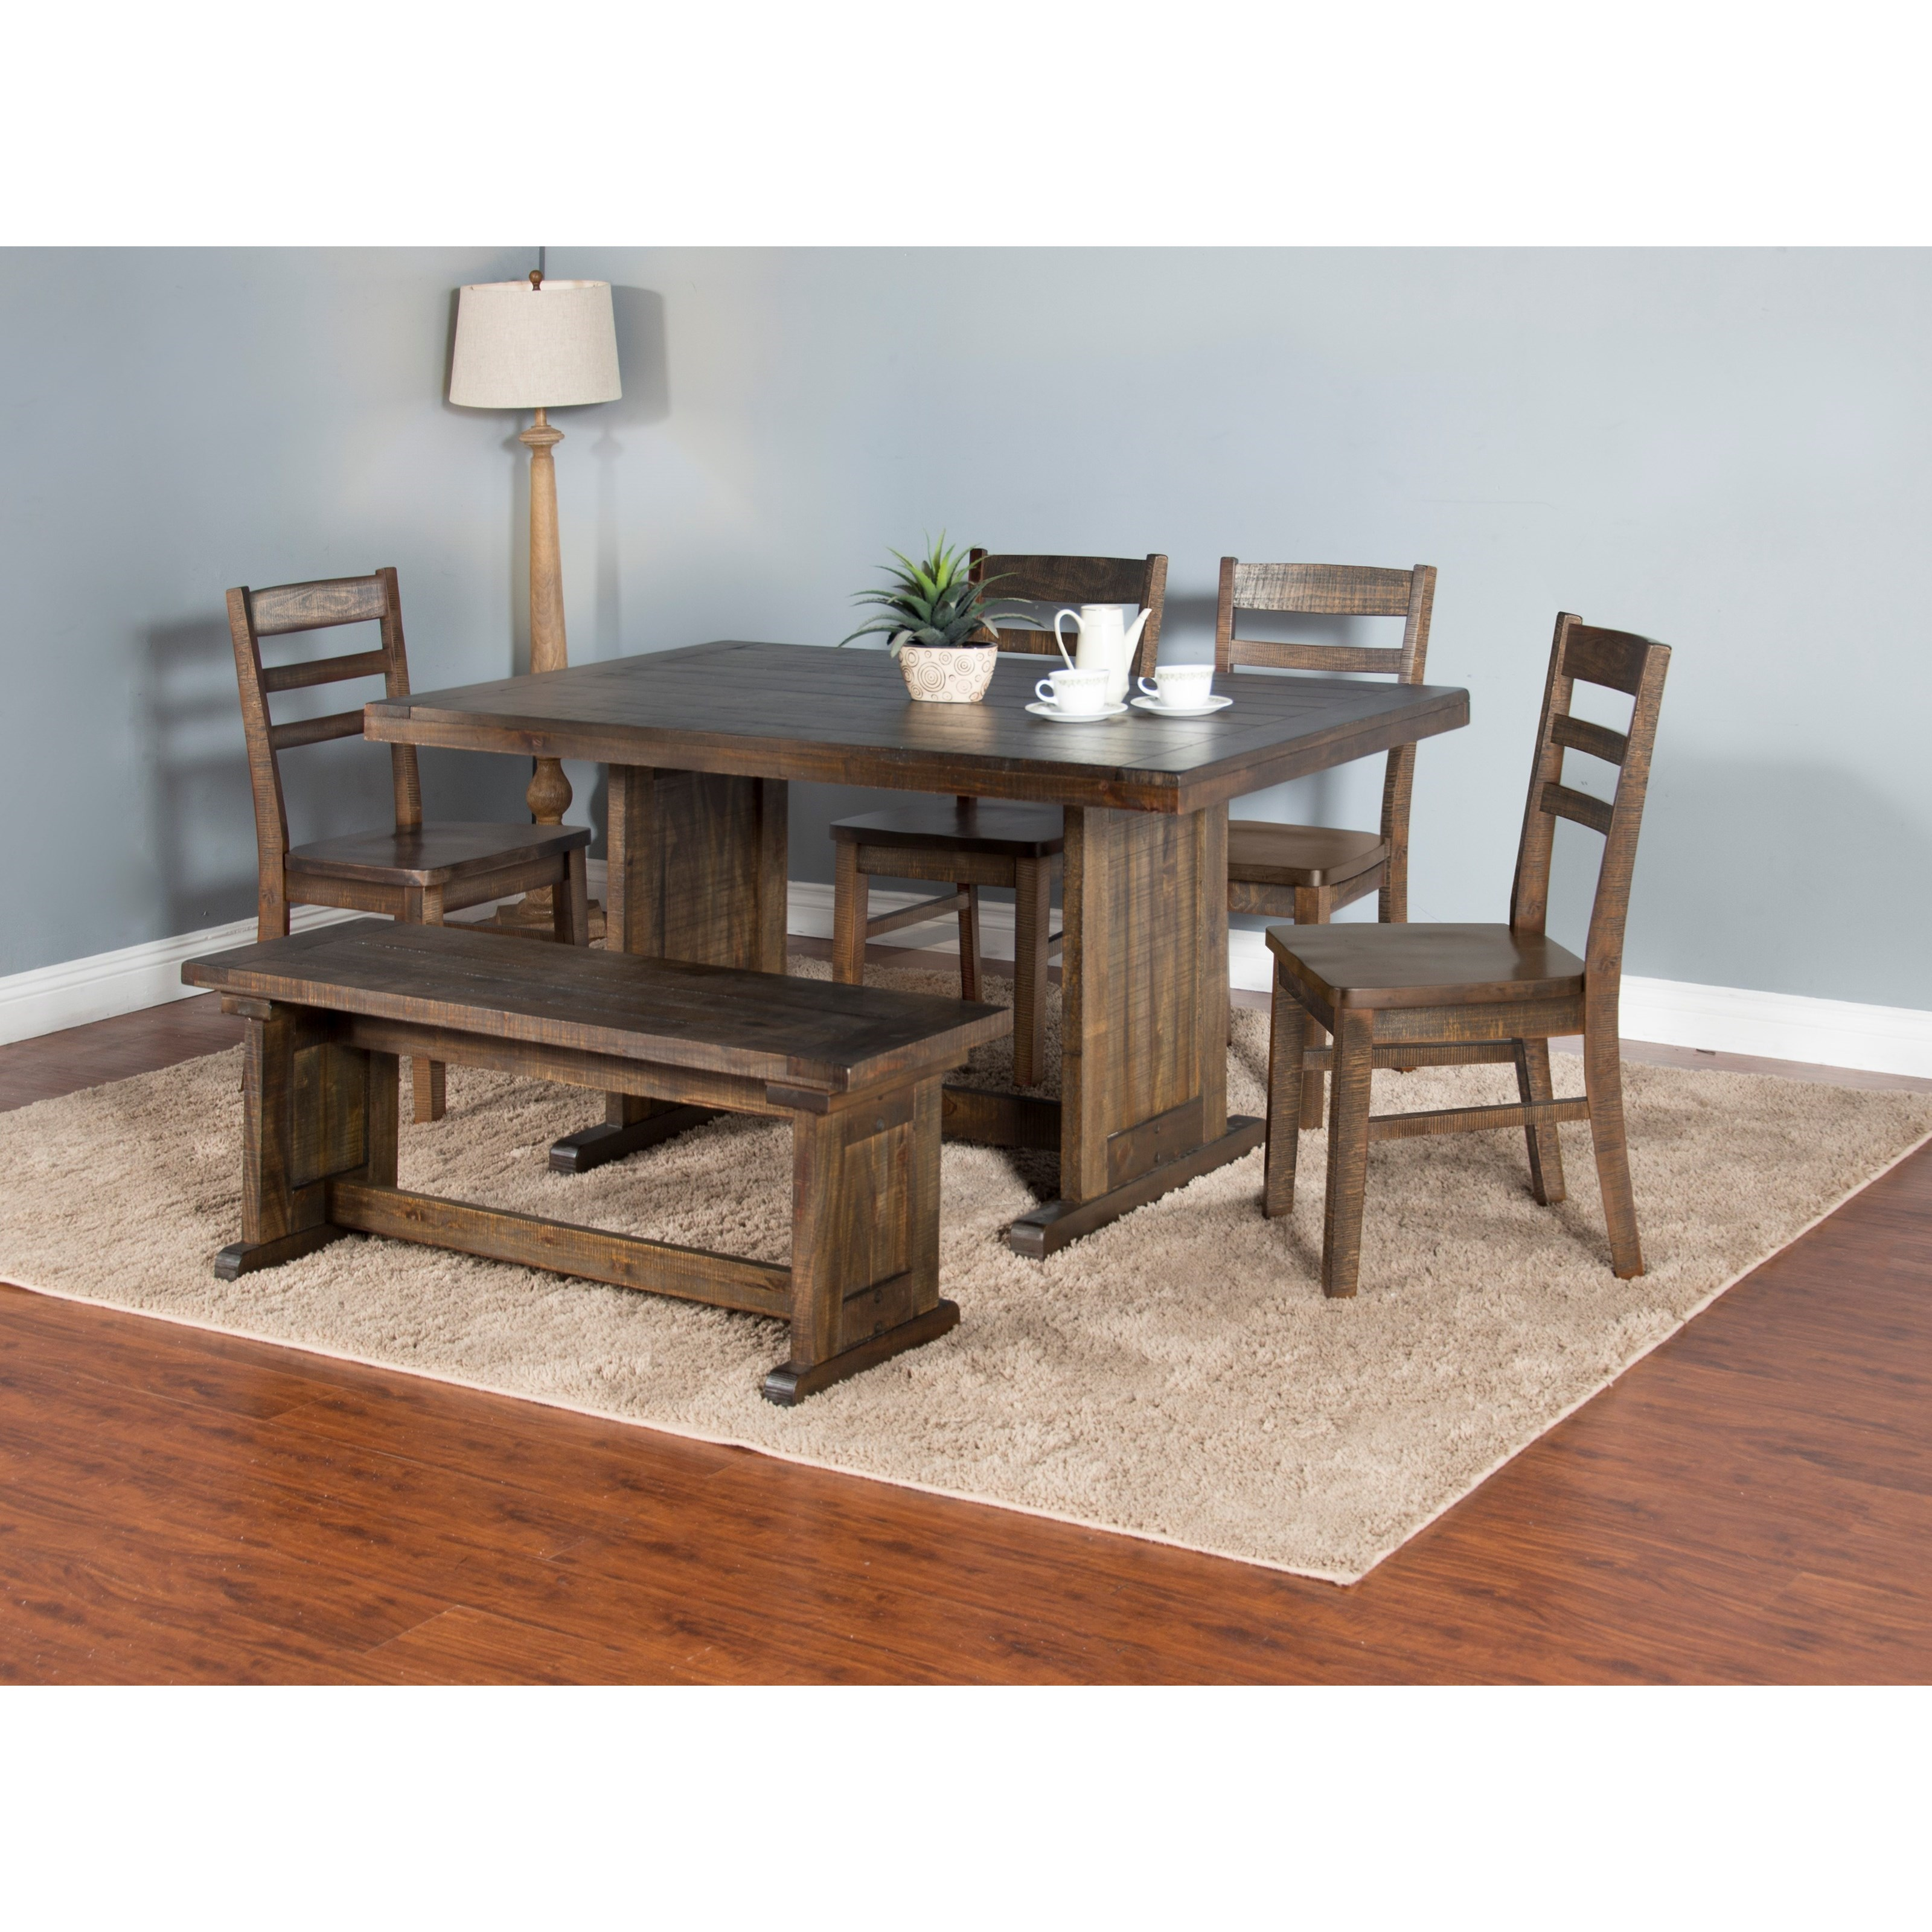 Sunny Designs Homestead Rustic Style Table With Trestle